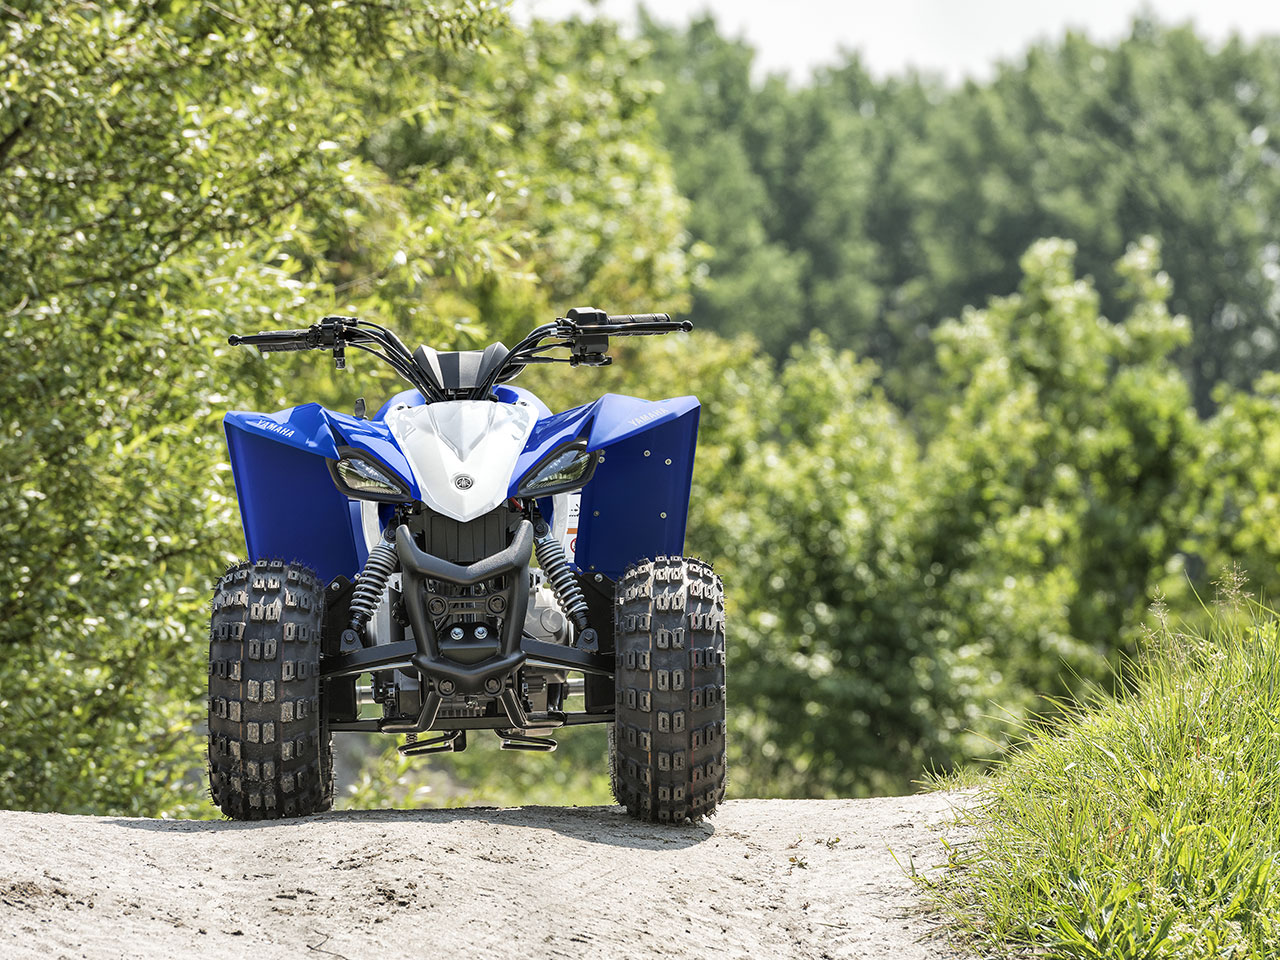 Yamaha YFZ50 in team yamaha blue and white colour, being ridden off-track